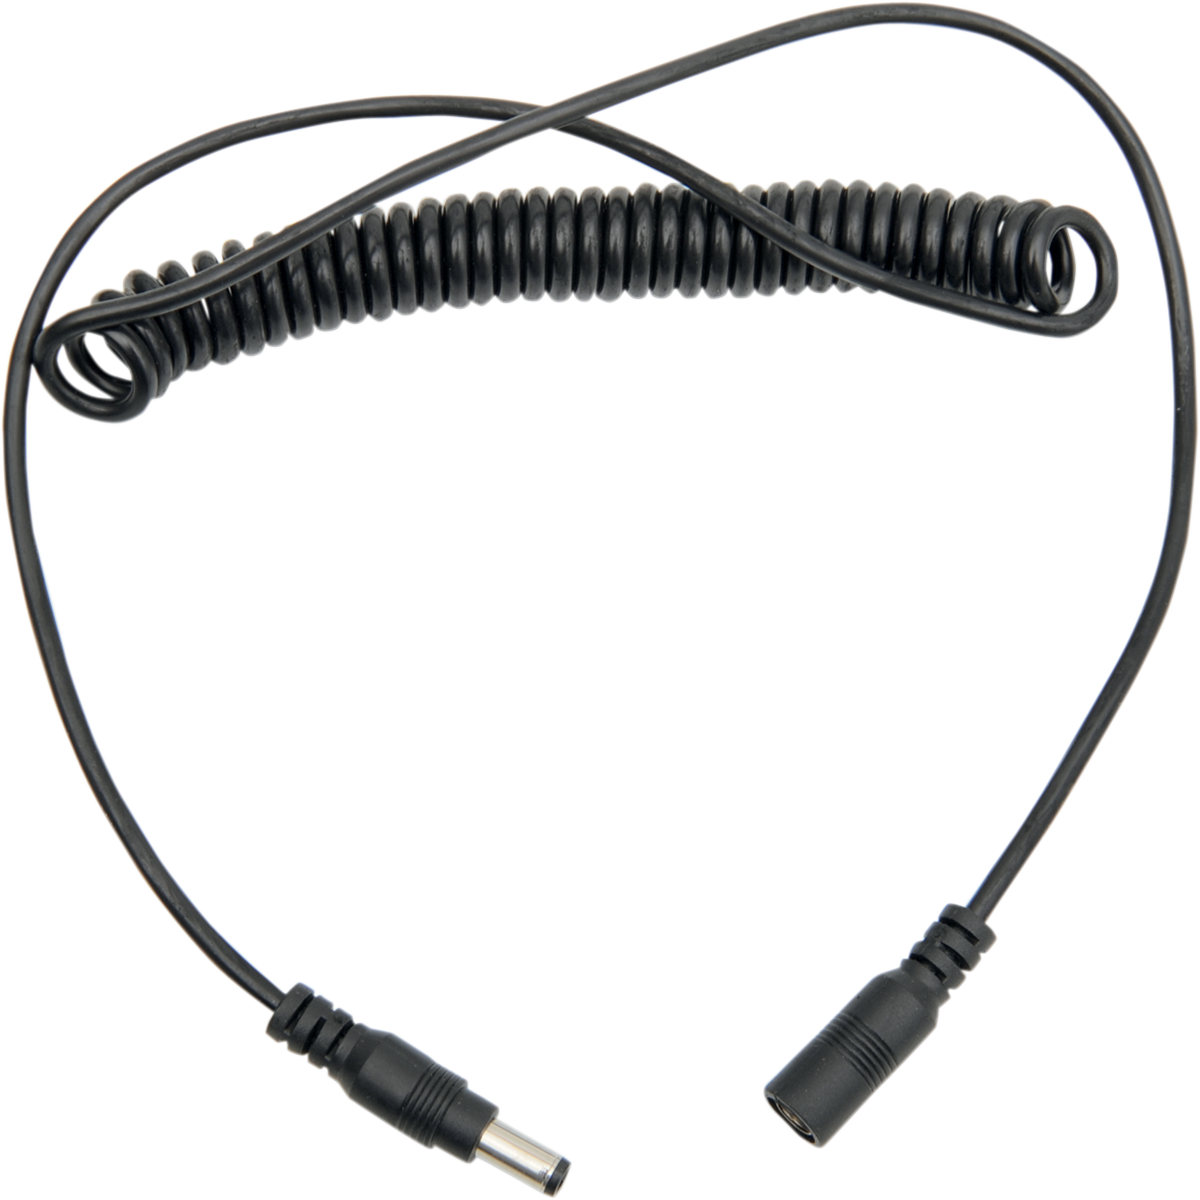 Wiring Kit Coiled Cable